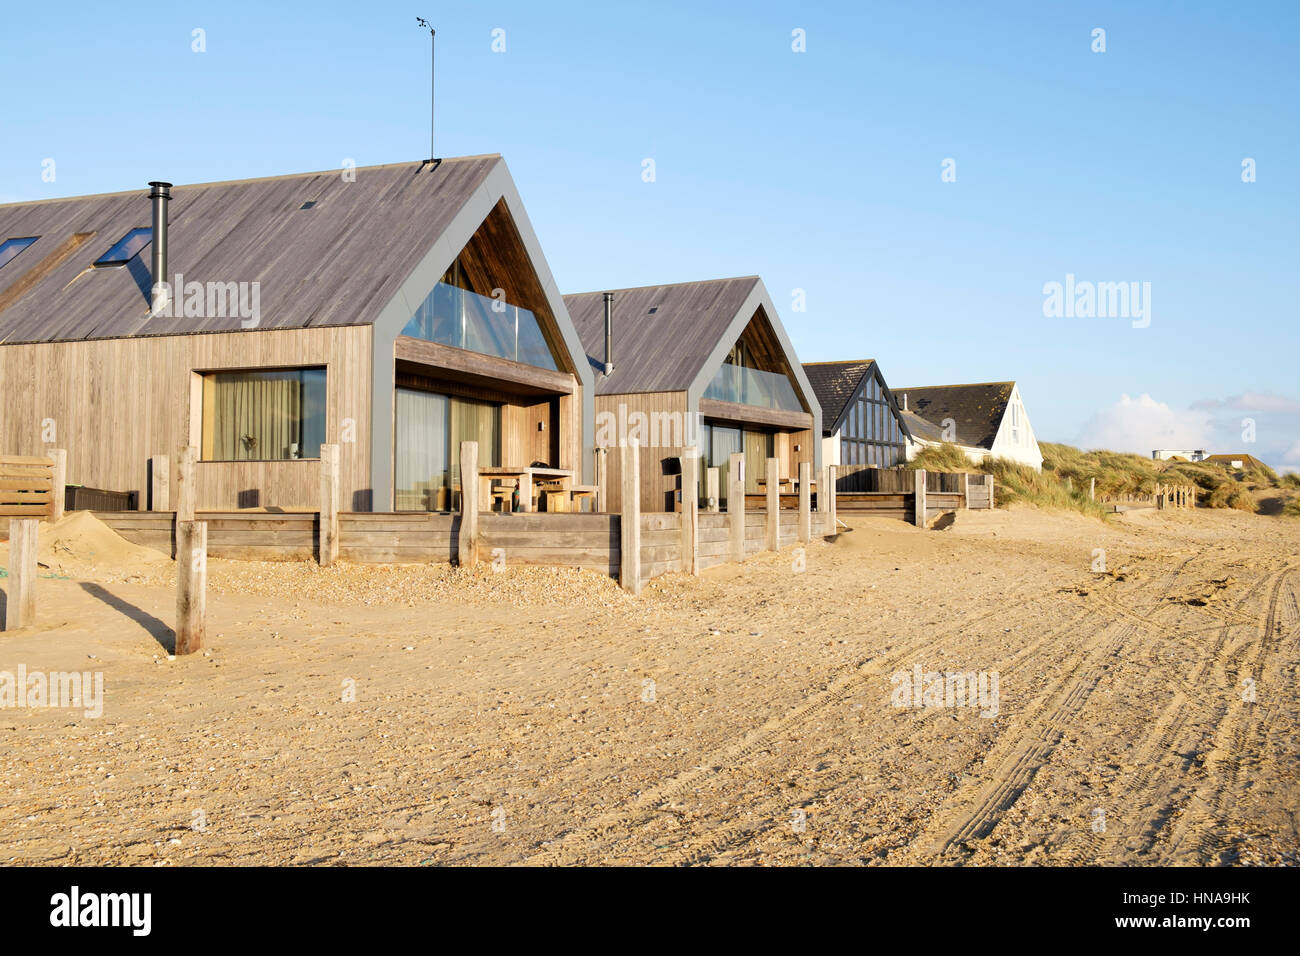 Camber sands Beach Houses, Architects: Walker and Martin, East Sussex, England, UK - Stock Image